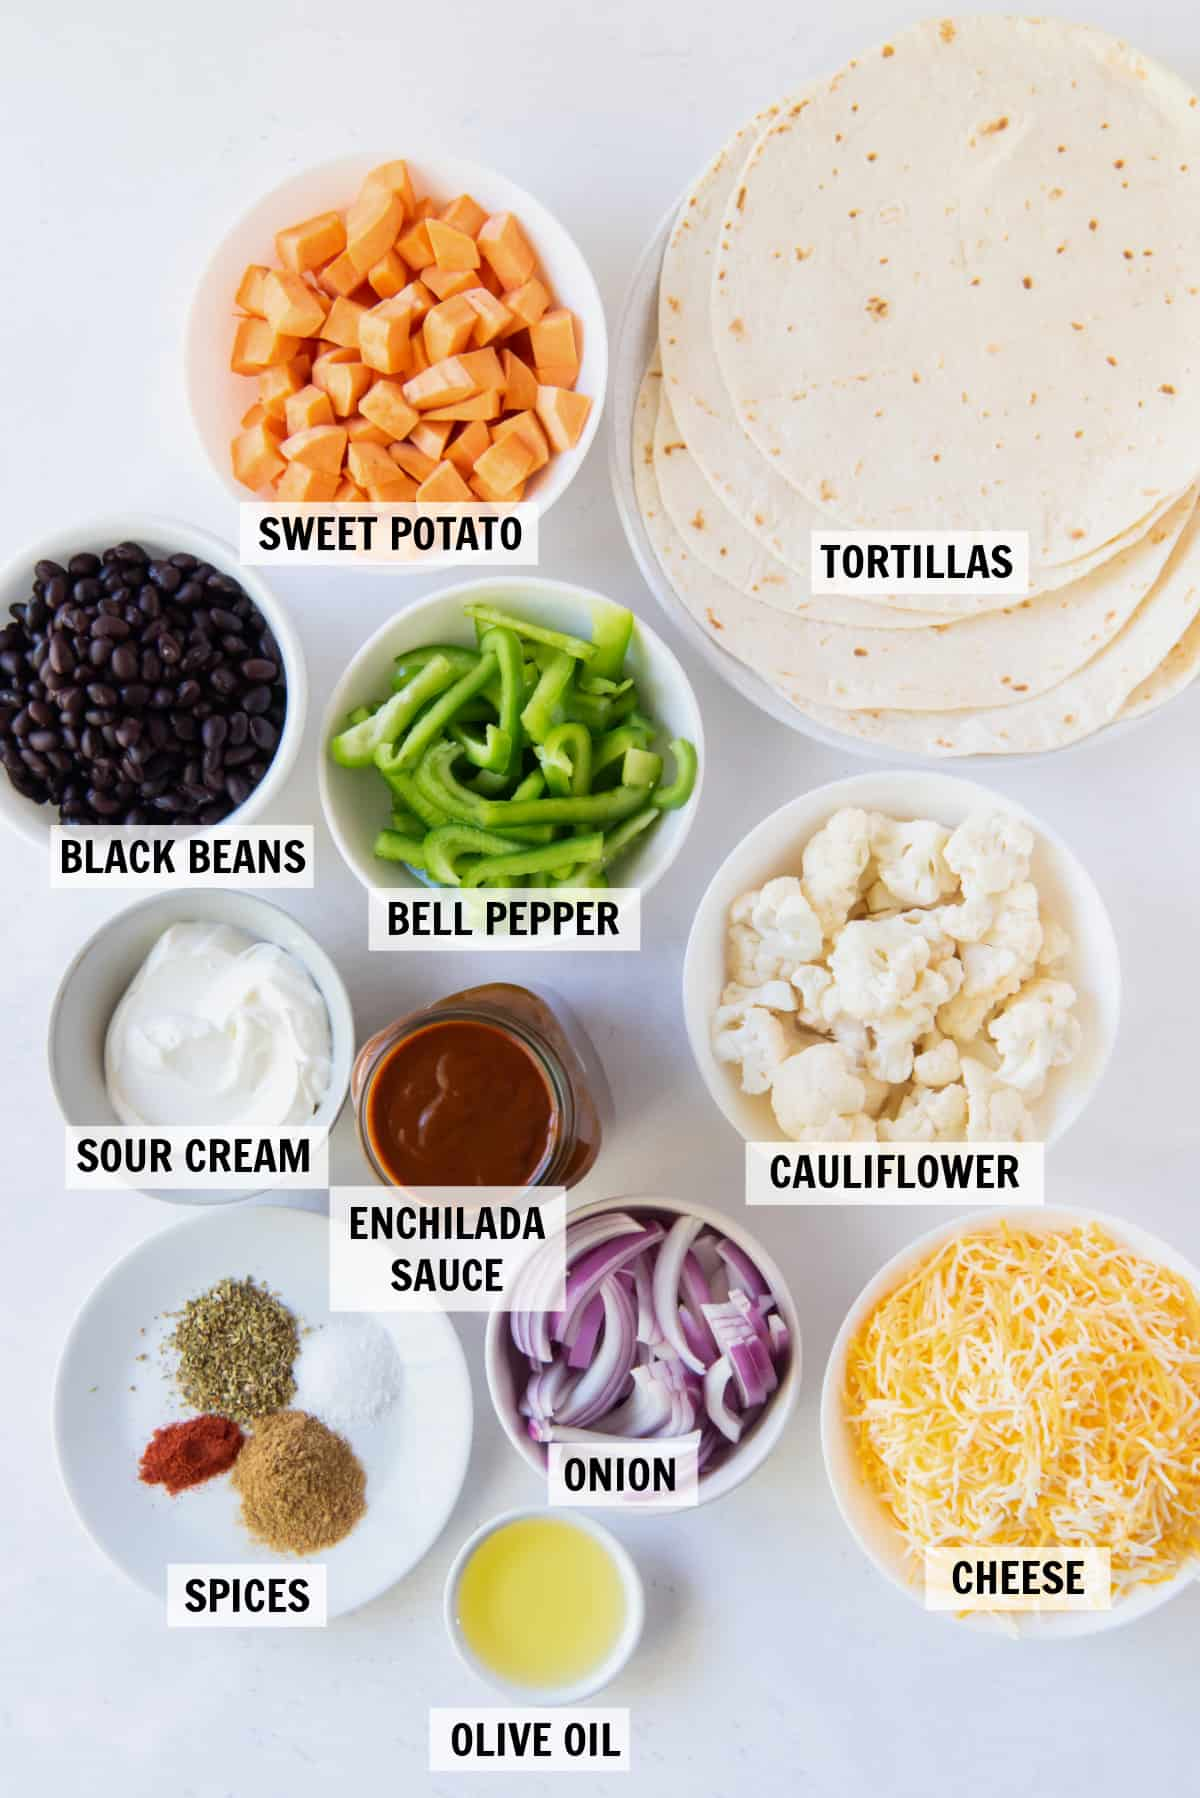 The ingredients to make vegetable enchiladas measured out in small white bowls.